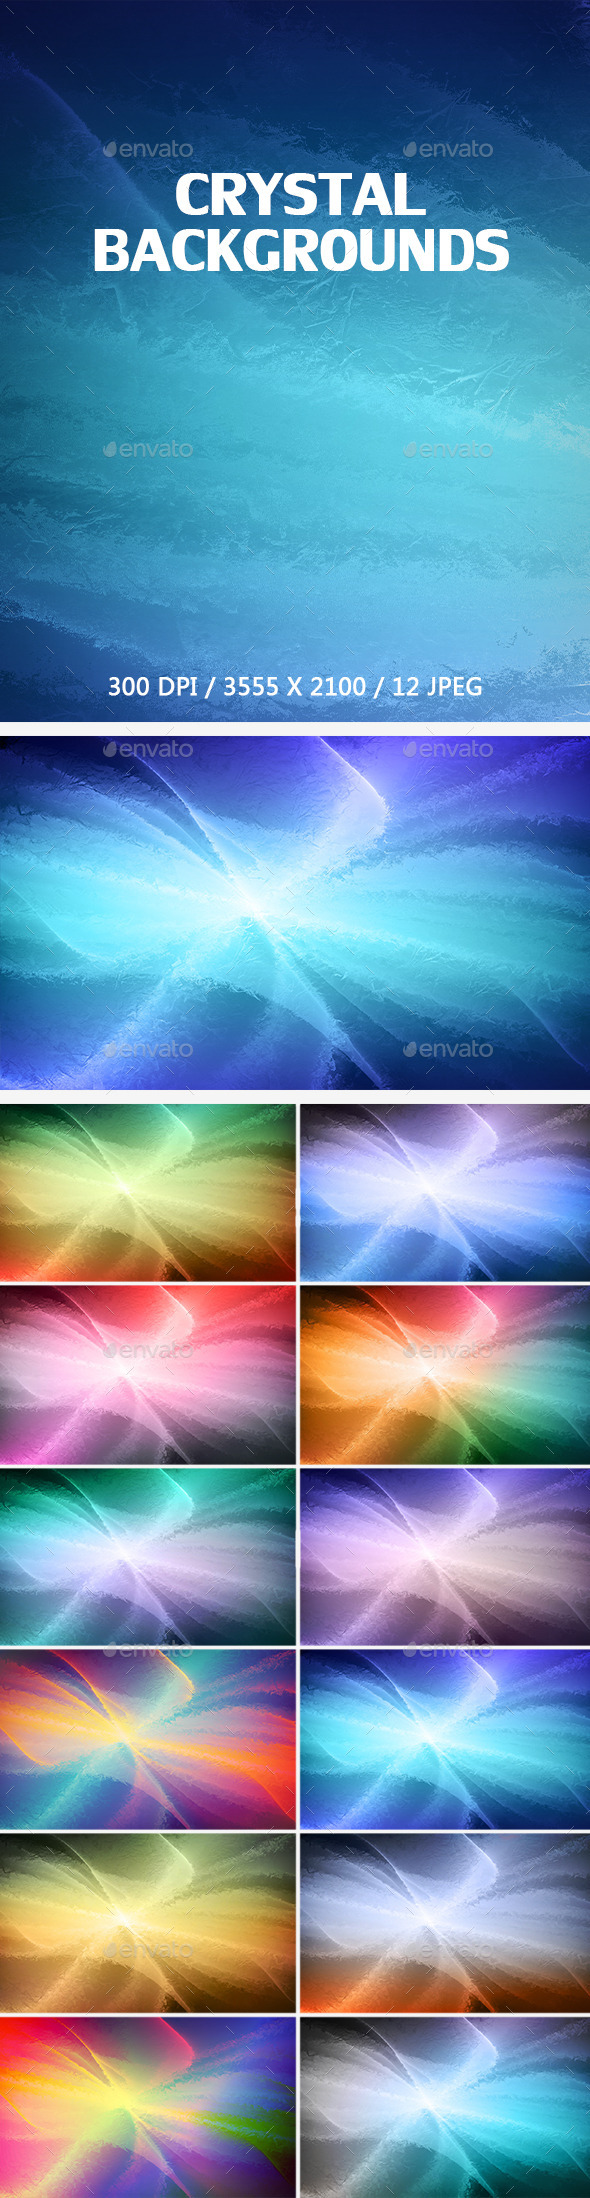 12 Crystal Backgrounds